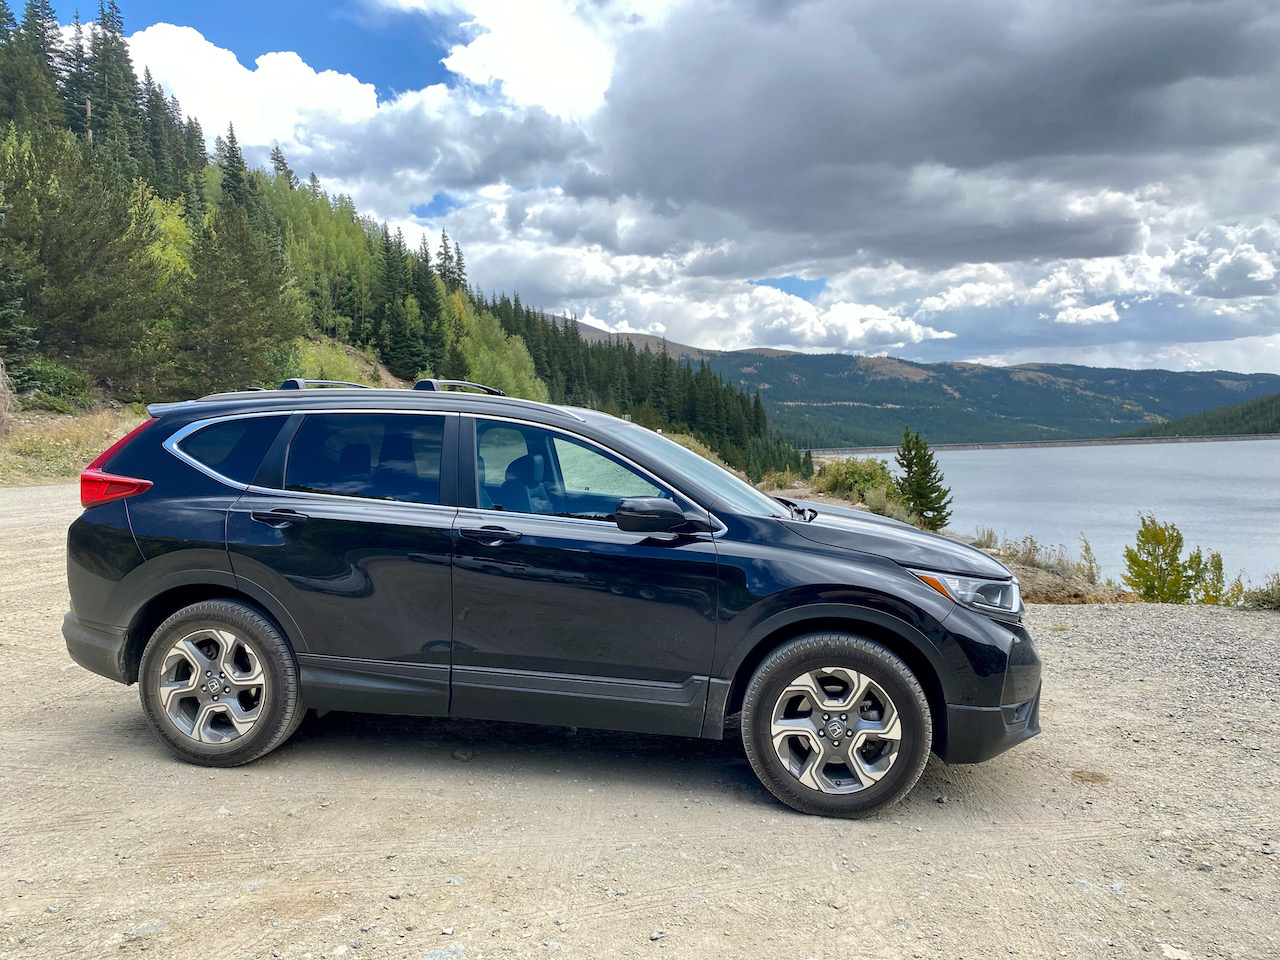 2017 Honda CR-V parked in front of lake and mountains.